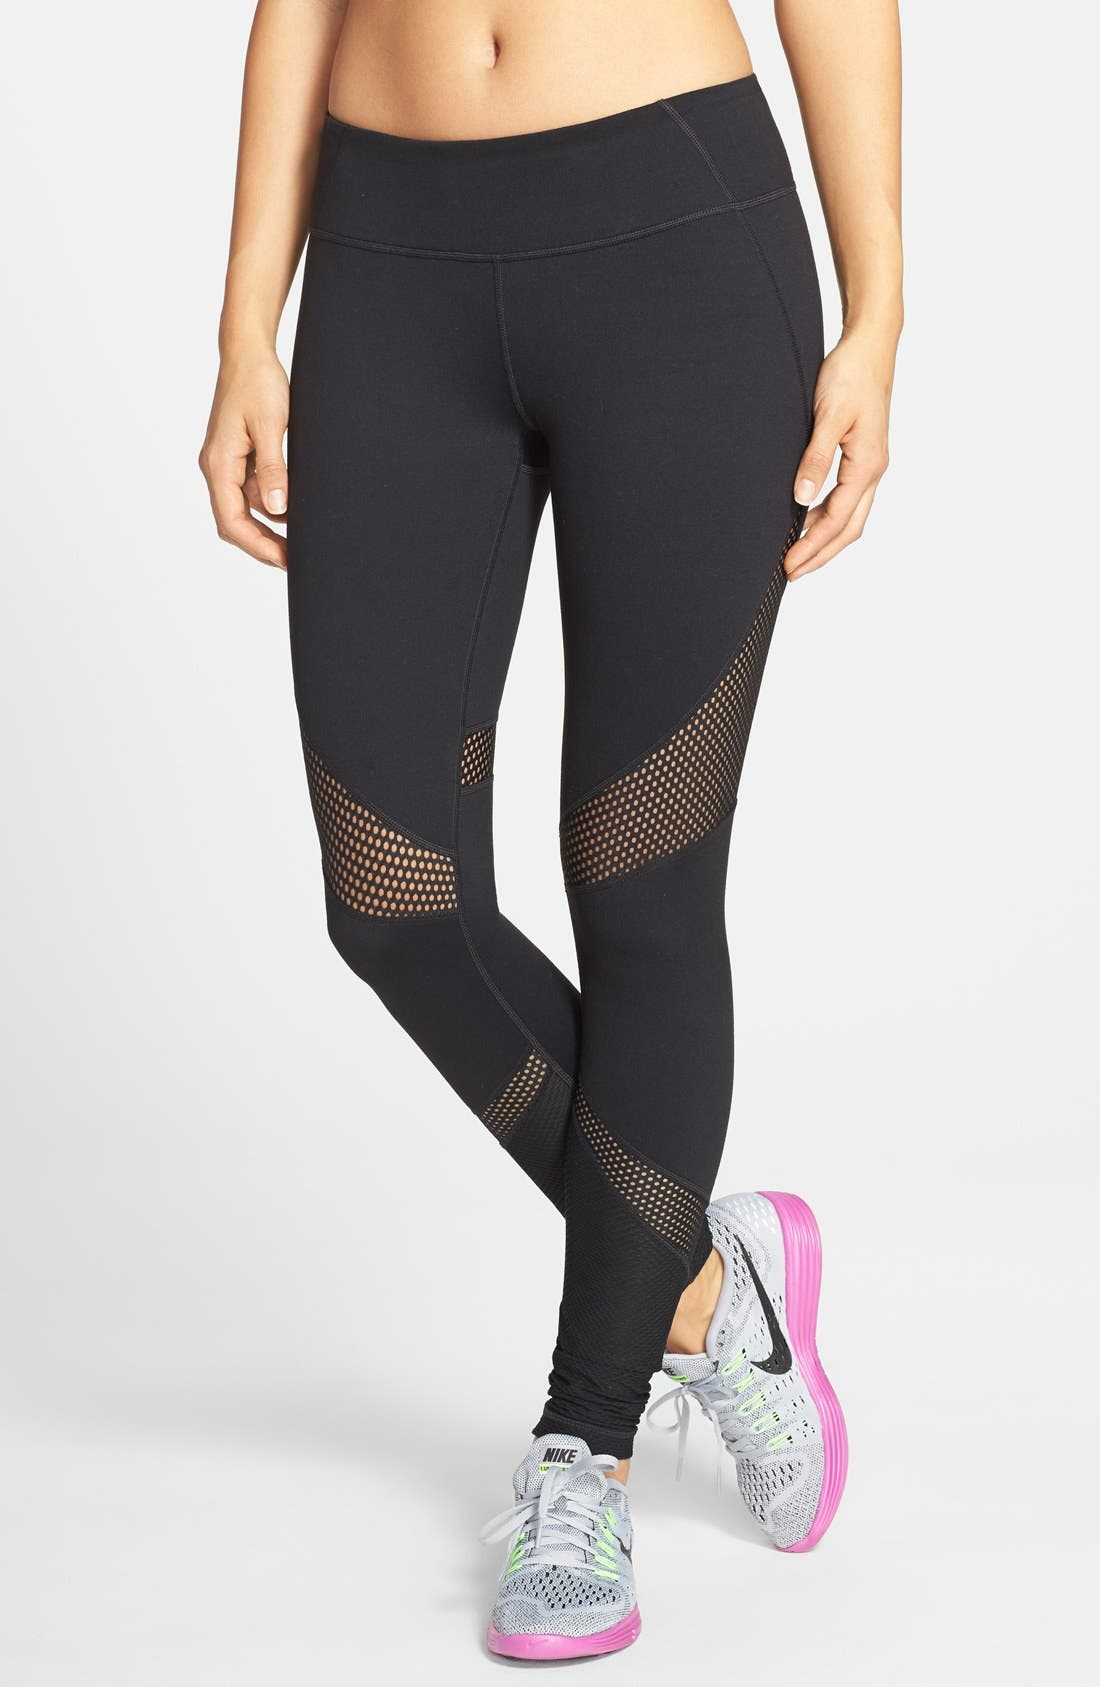 'Live In - Out of Bounds' Slim Fit Leggings,                         Main,                         color, Black